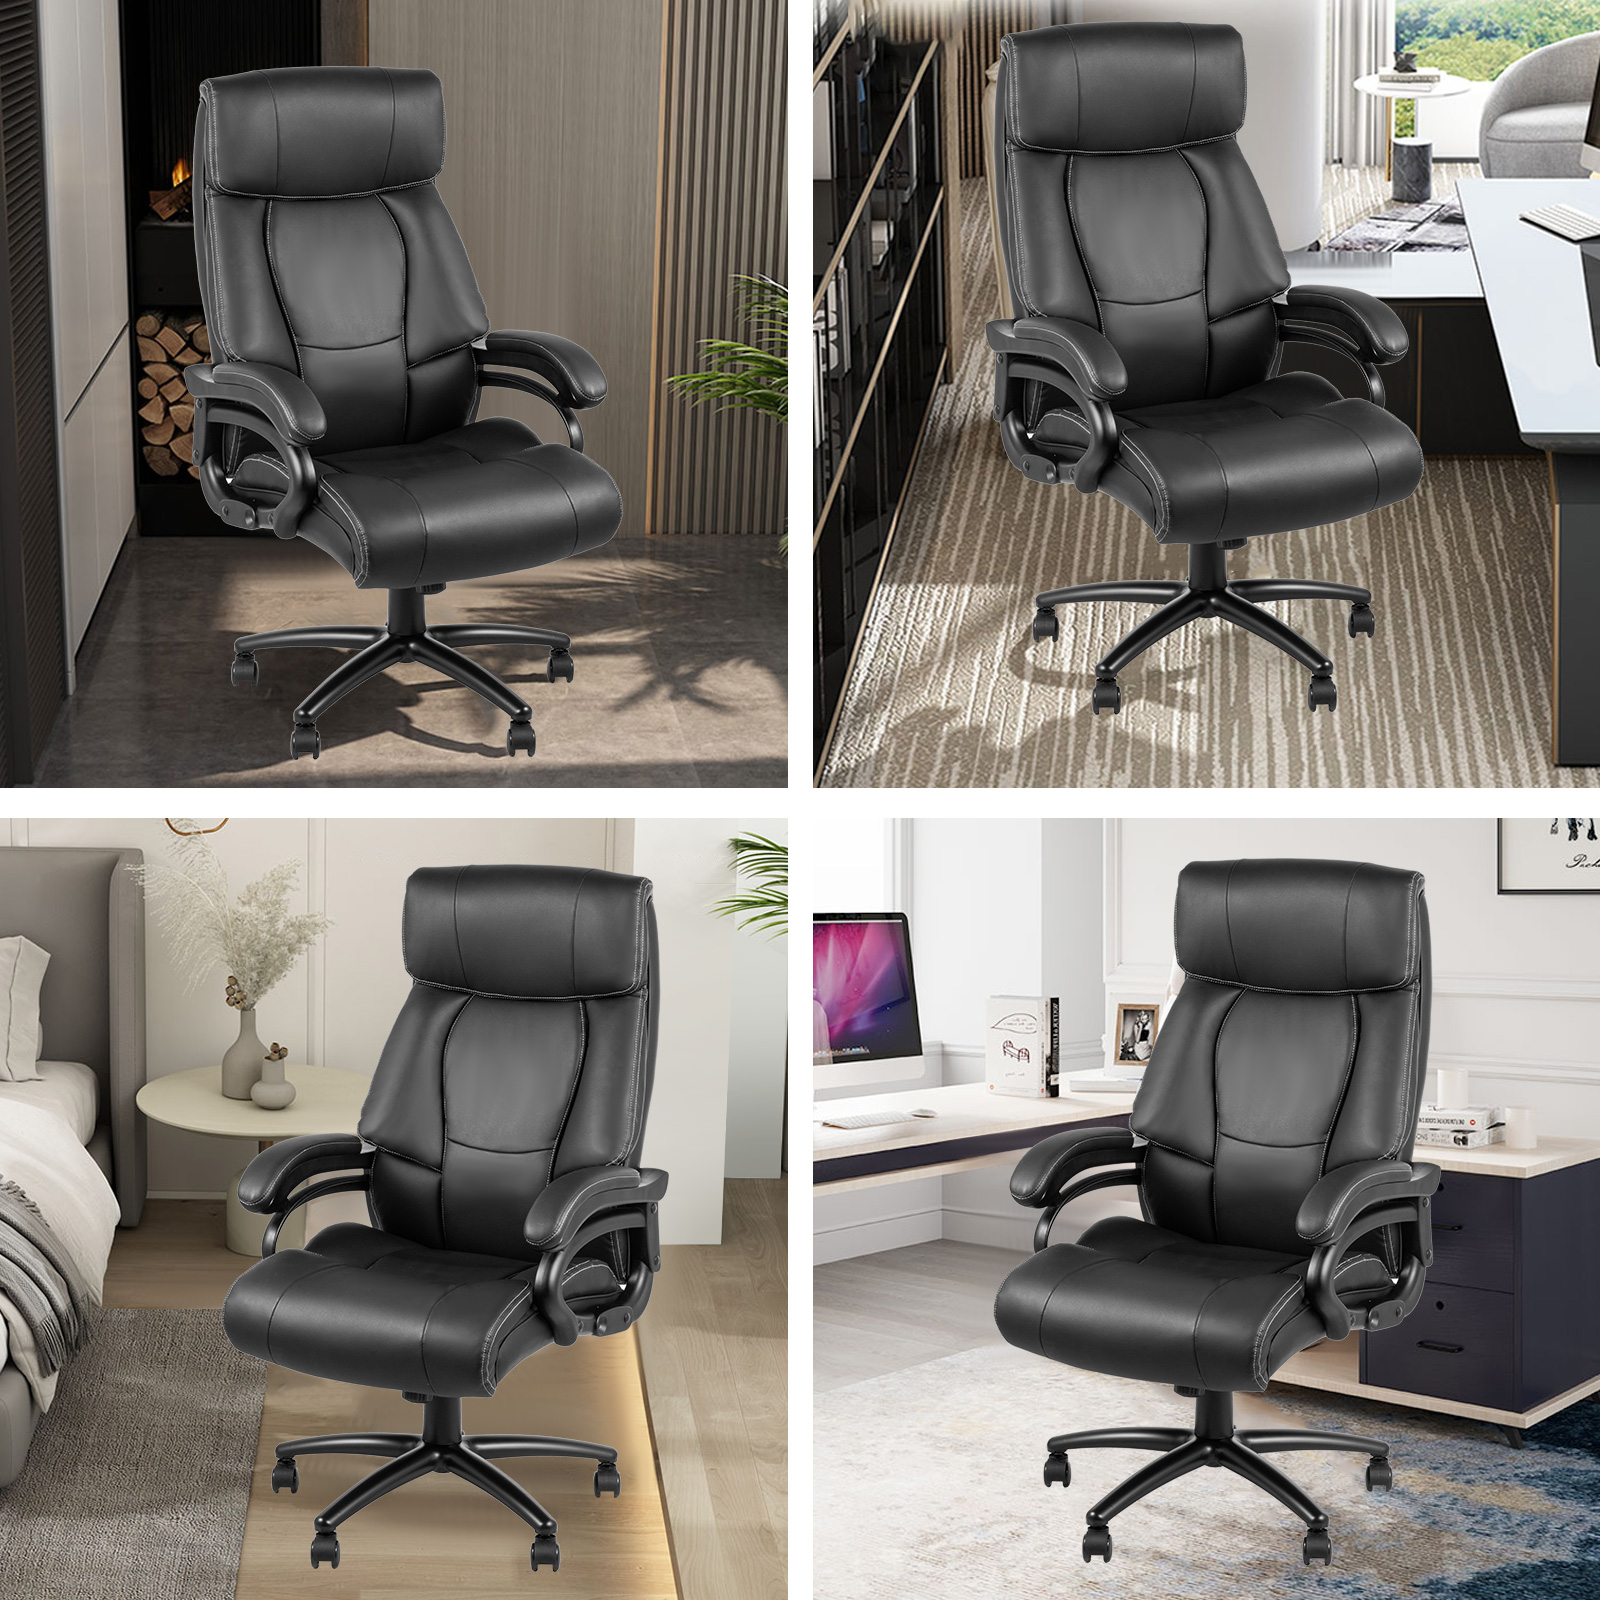 executive chair m103 7 - VEVOR Executive Chair High Back Office Chair Adjustable Swivel Executive Office Chair with Headrest Reclining Computer Chair